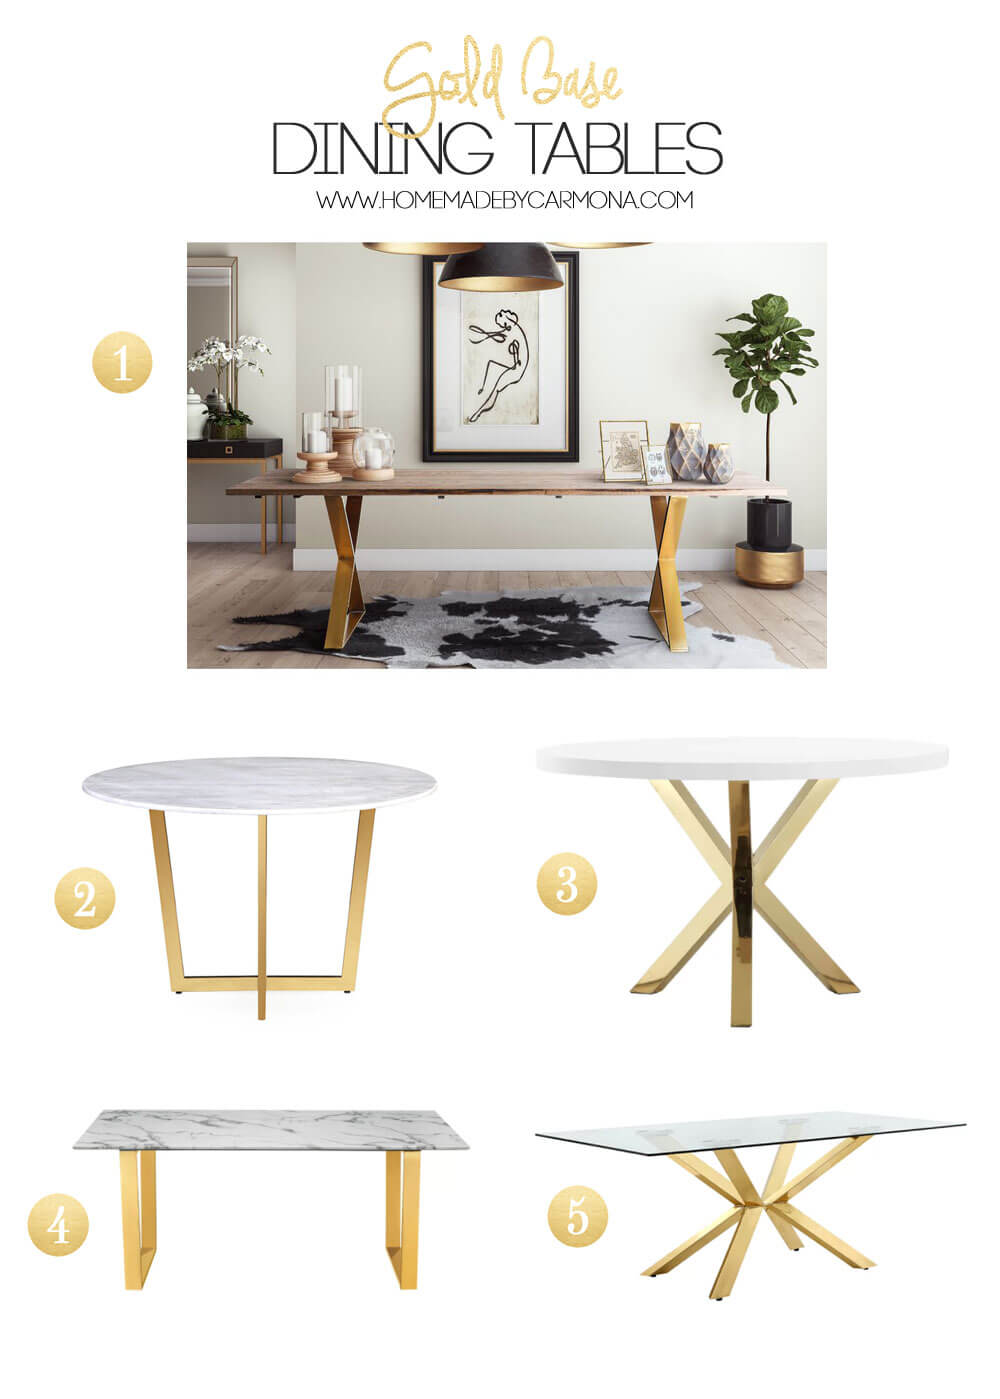 Gold-Base-Table-Options